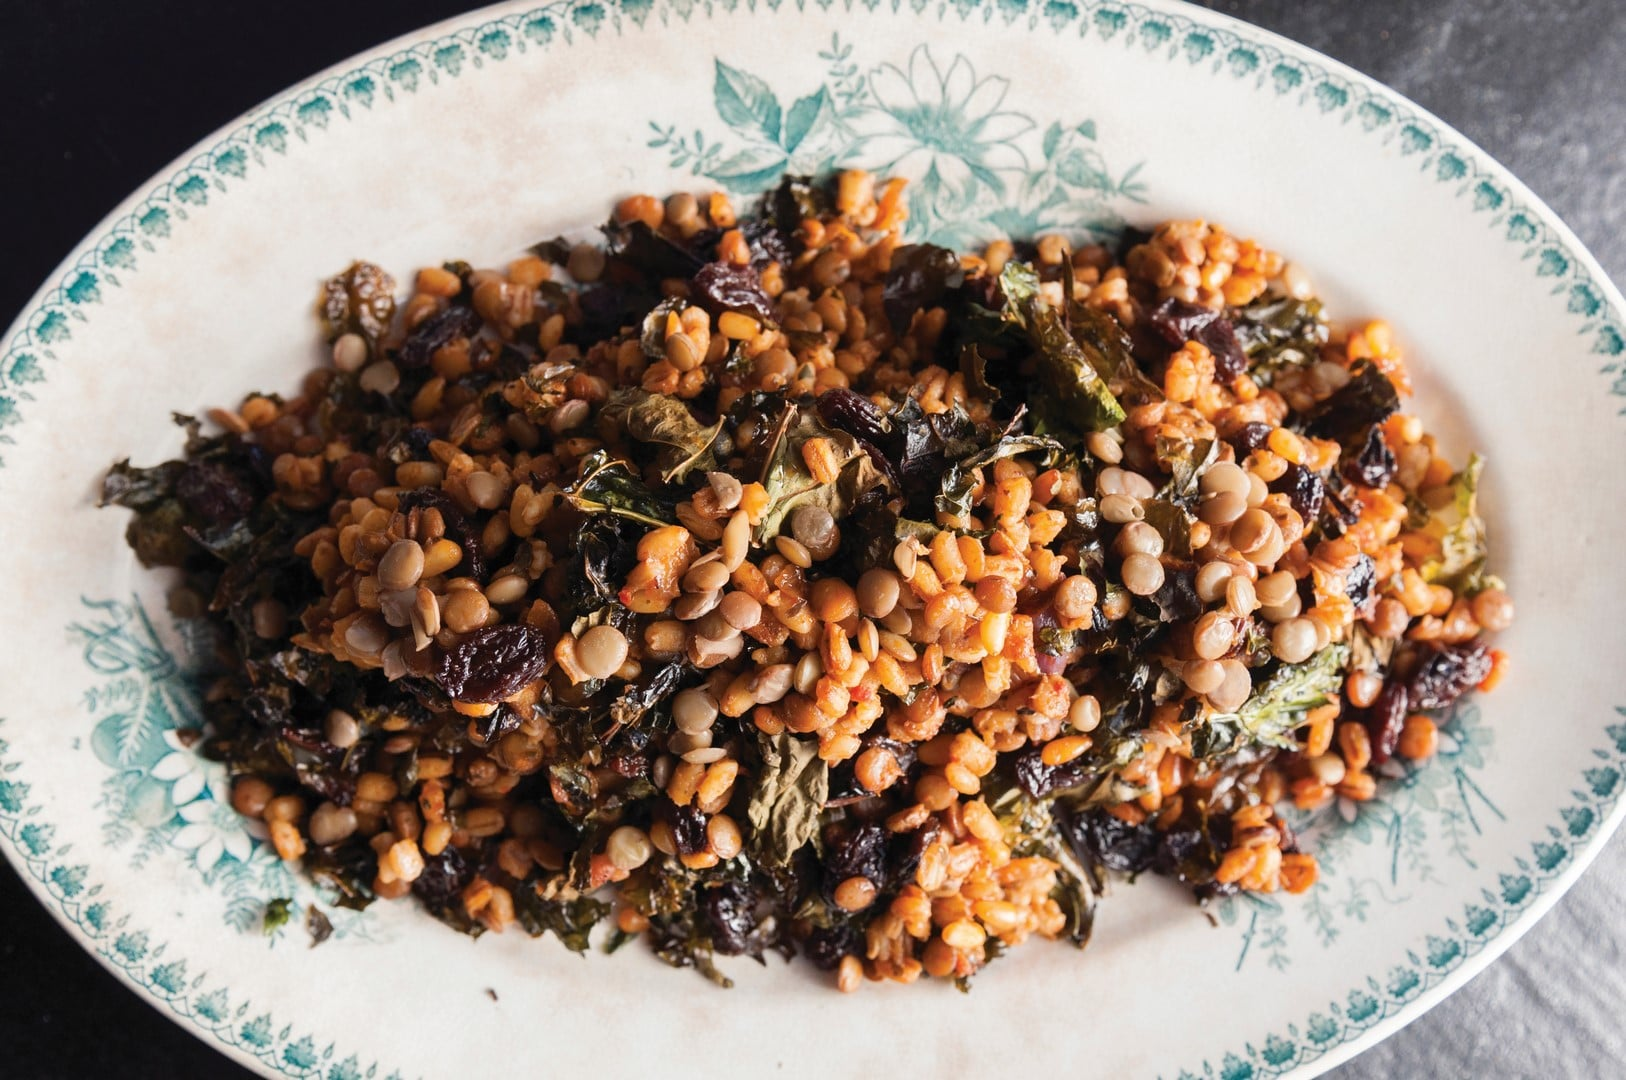 Barley with a middle eastern twist.